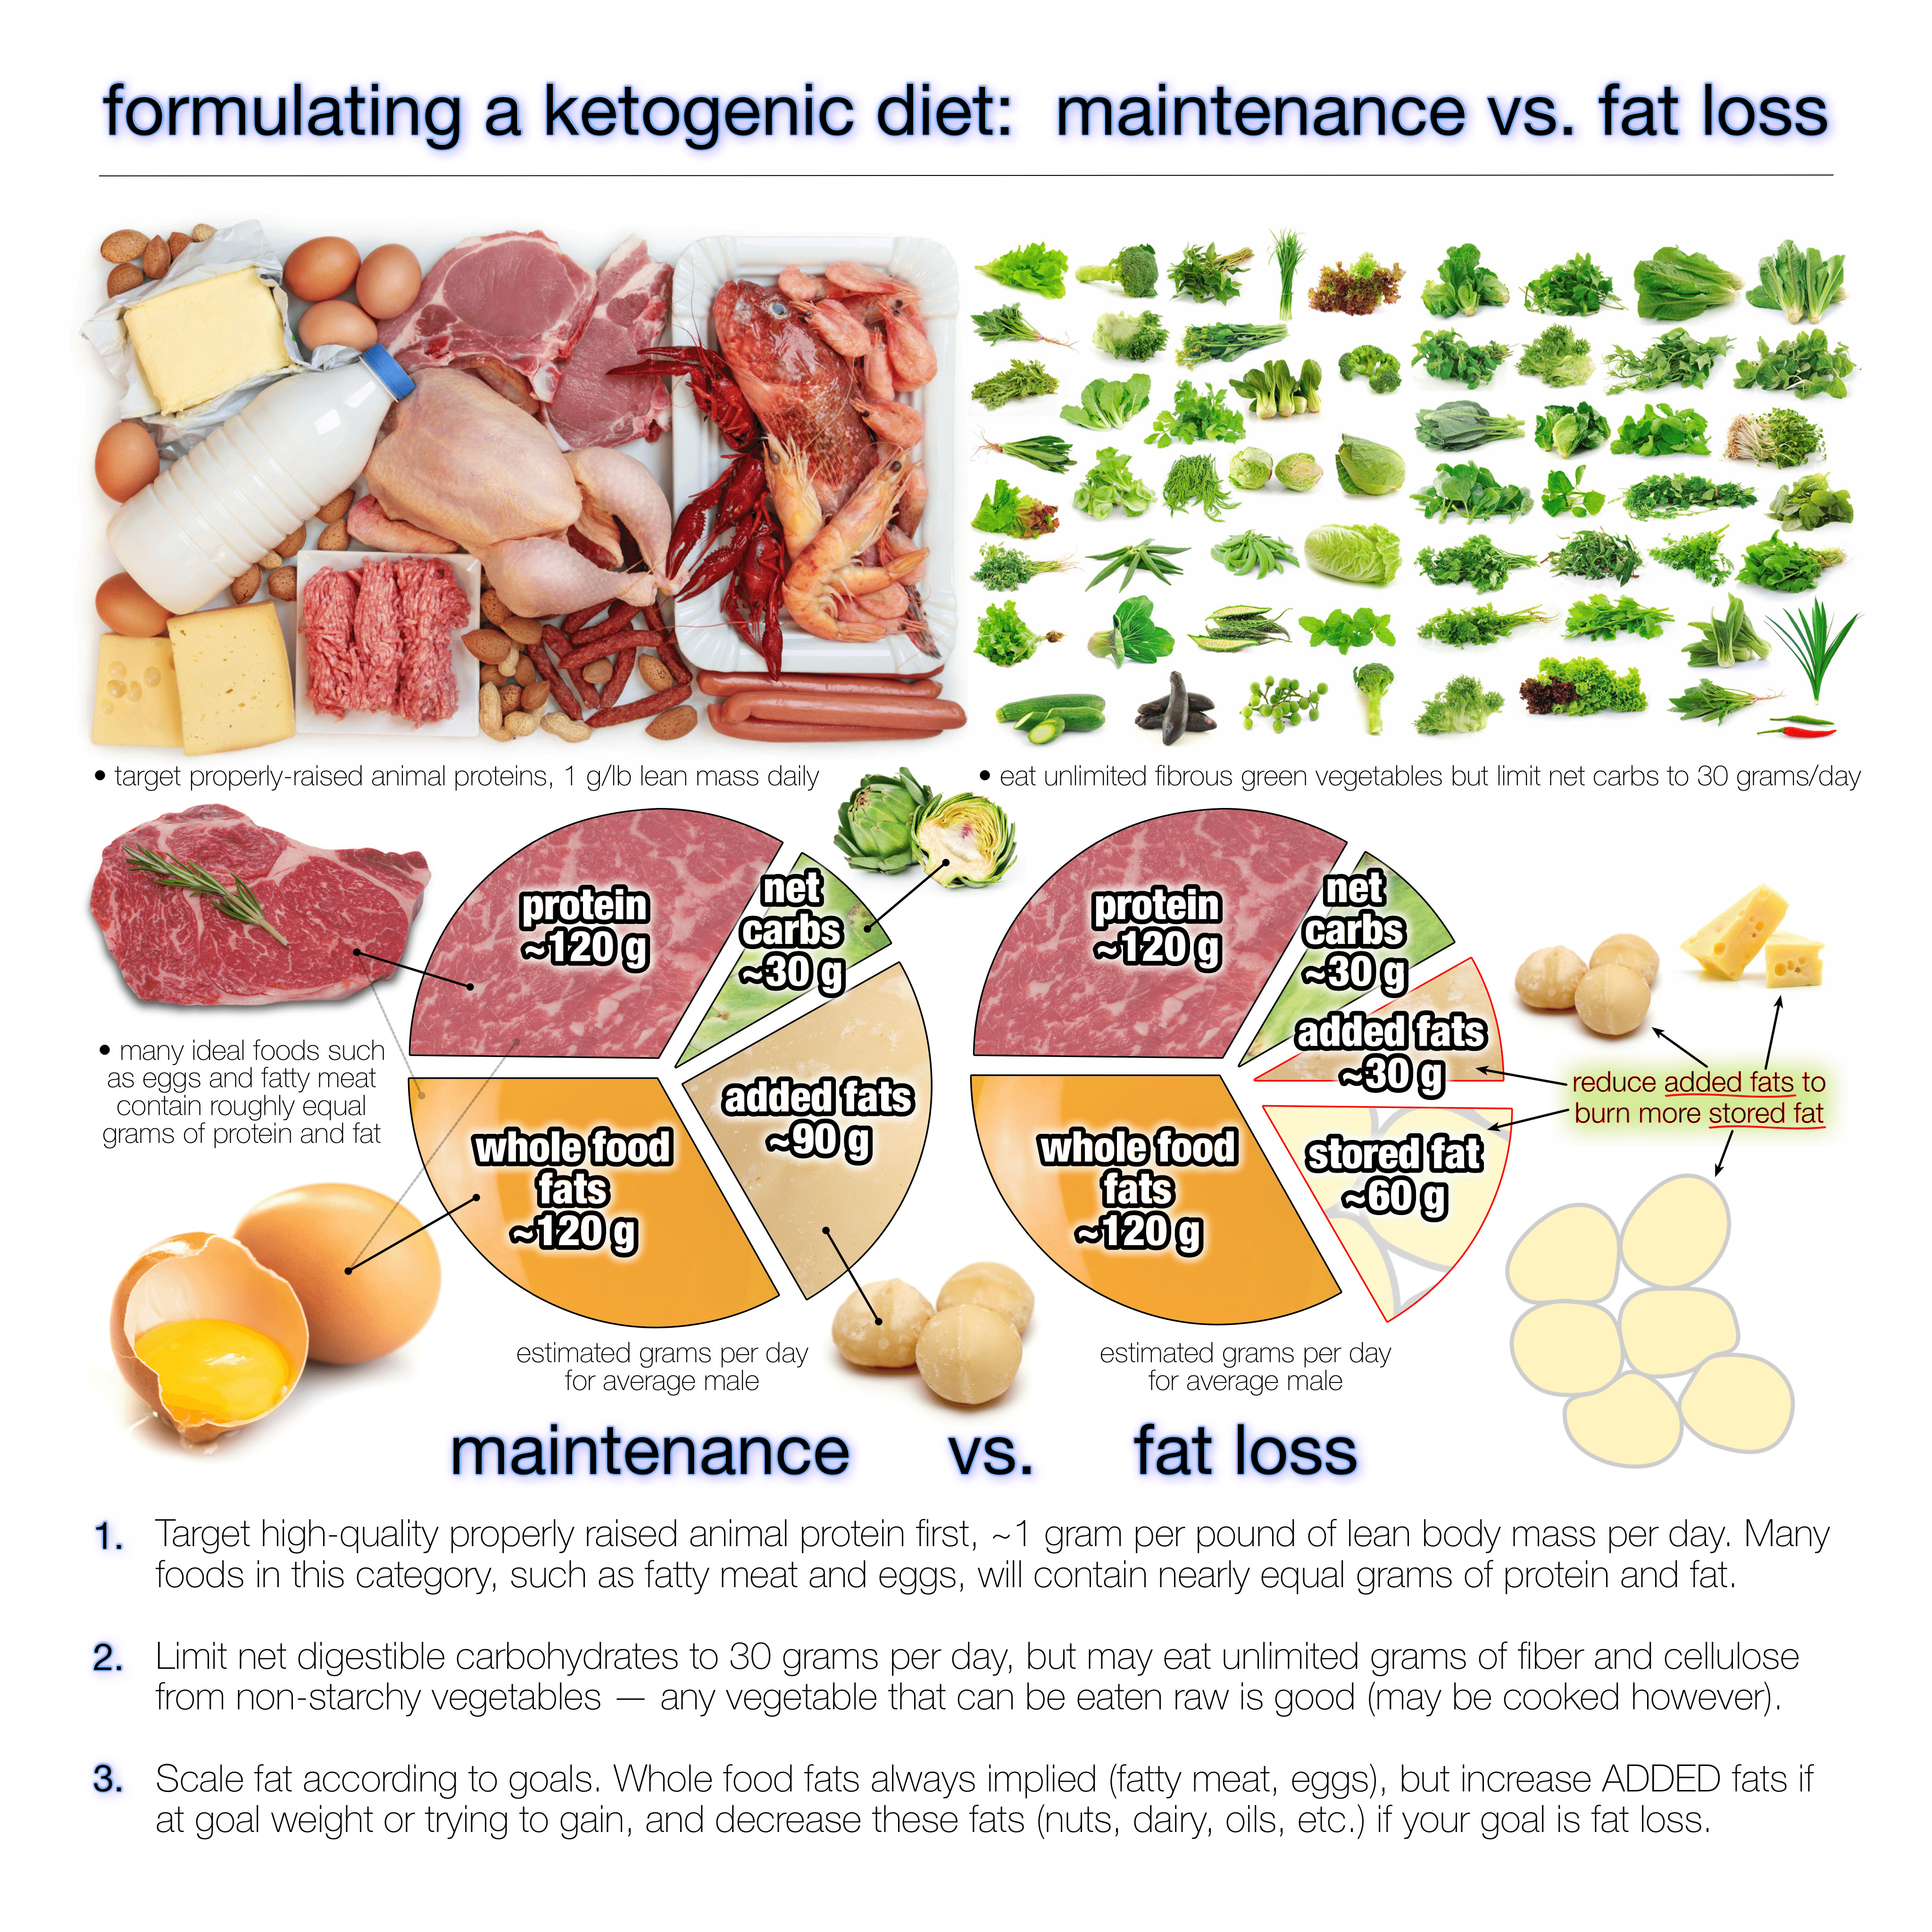 Is The Keto Diet Healthy  How Much Fat Should You Eat on a Ketogenic Diet Diet Doctor